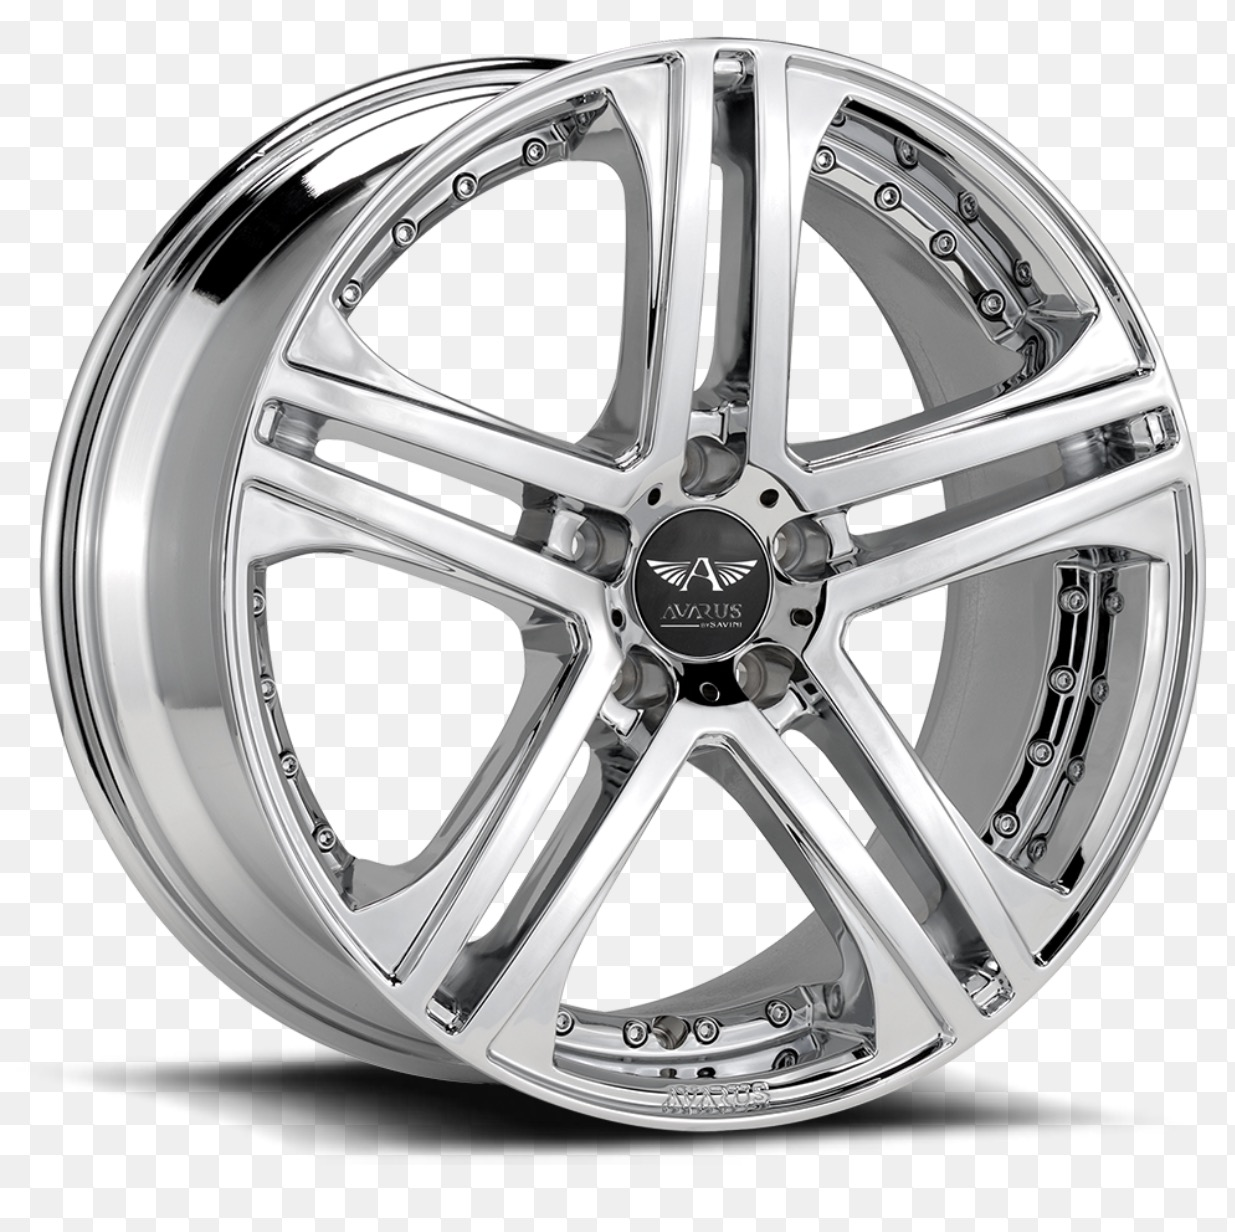 20 Inch Chrome Rims With Michelin Pilot Super Sports